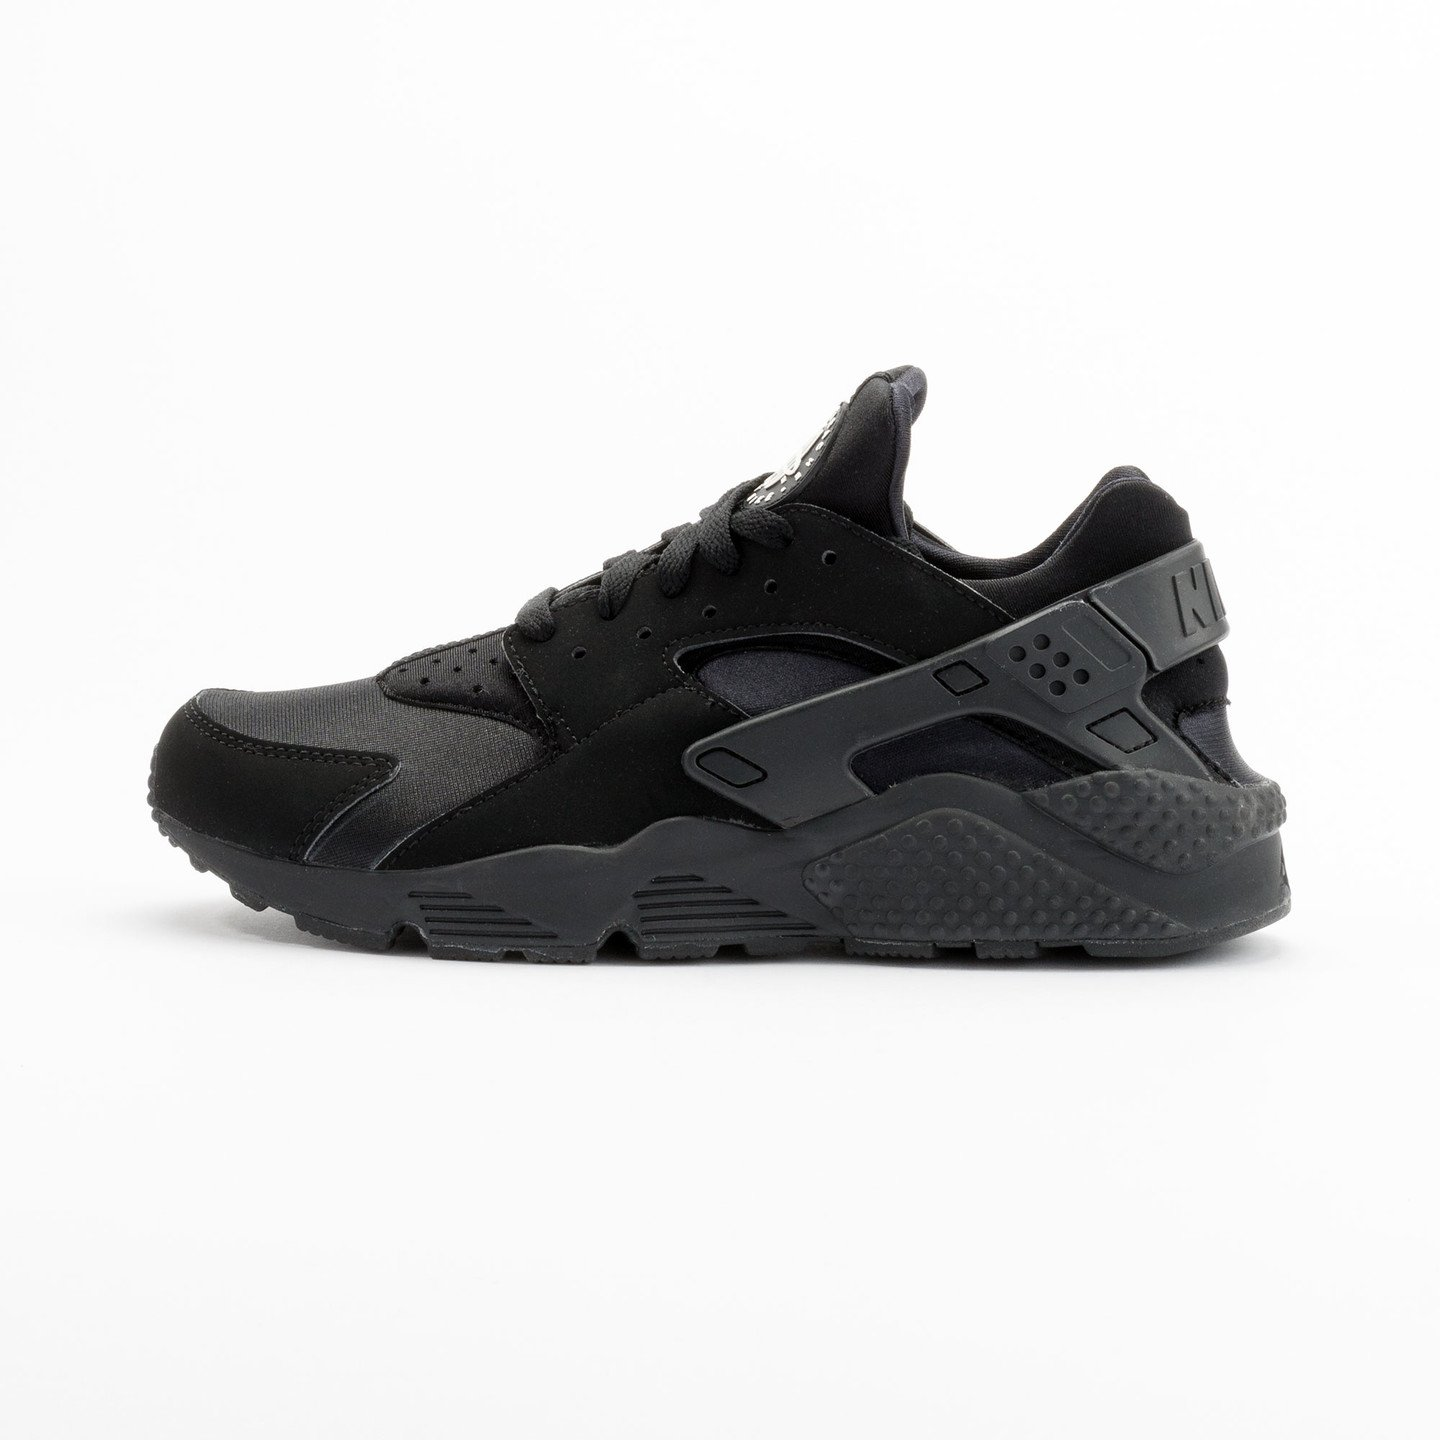 Nike Air Huarache Black/Black-White 318429-003-44.5